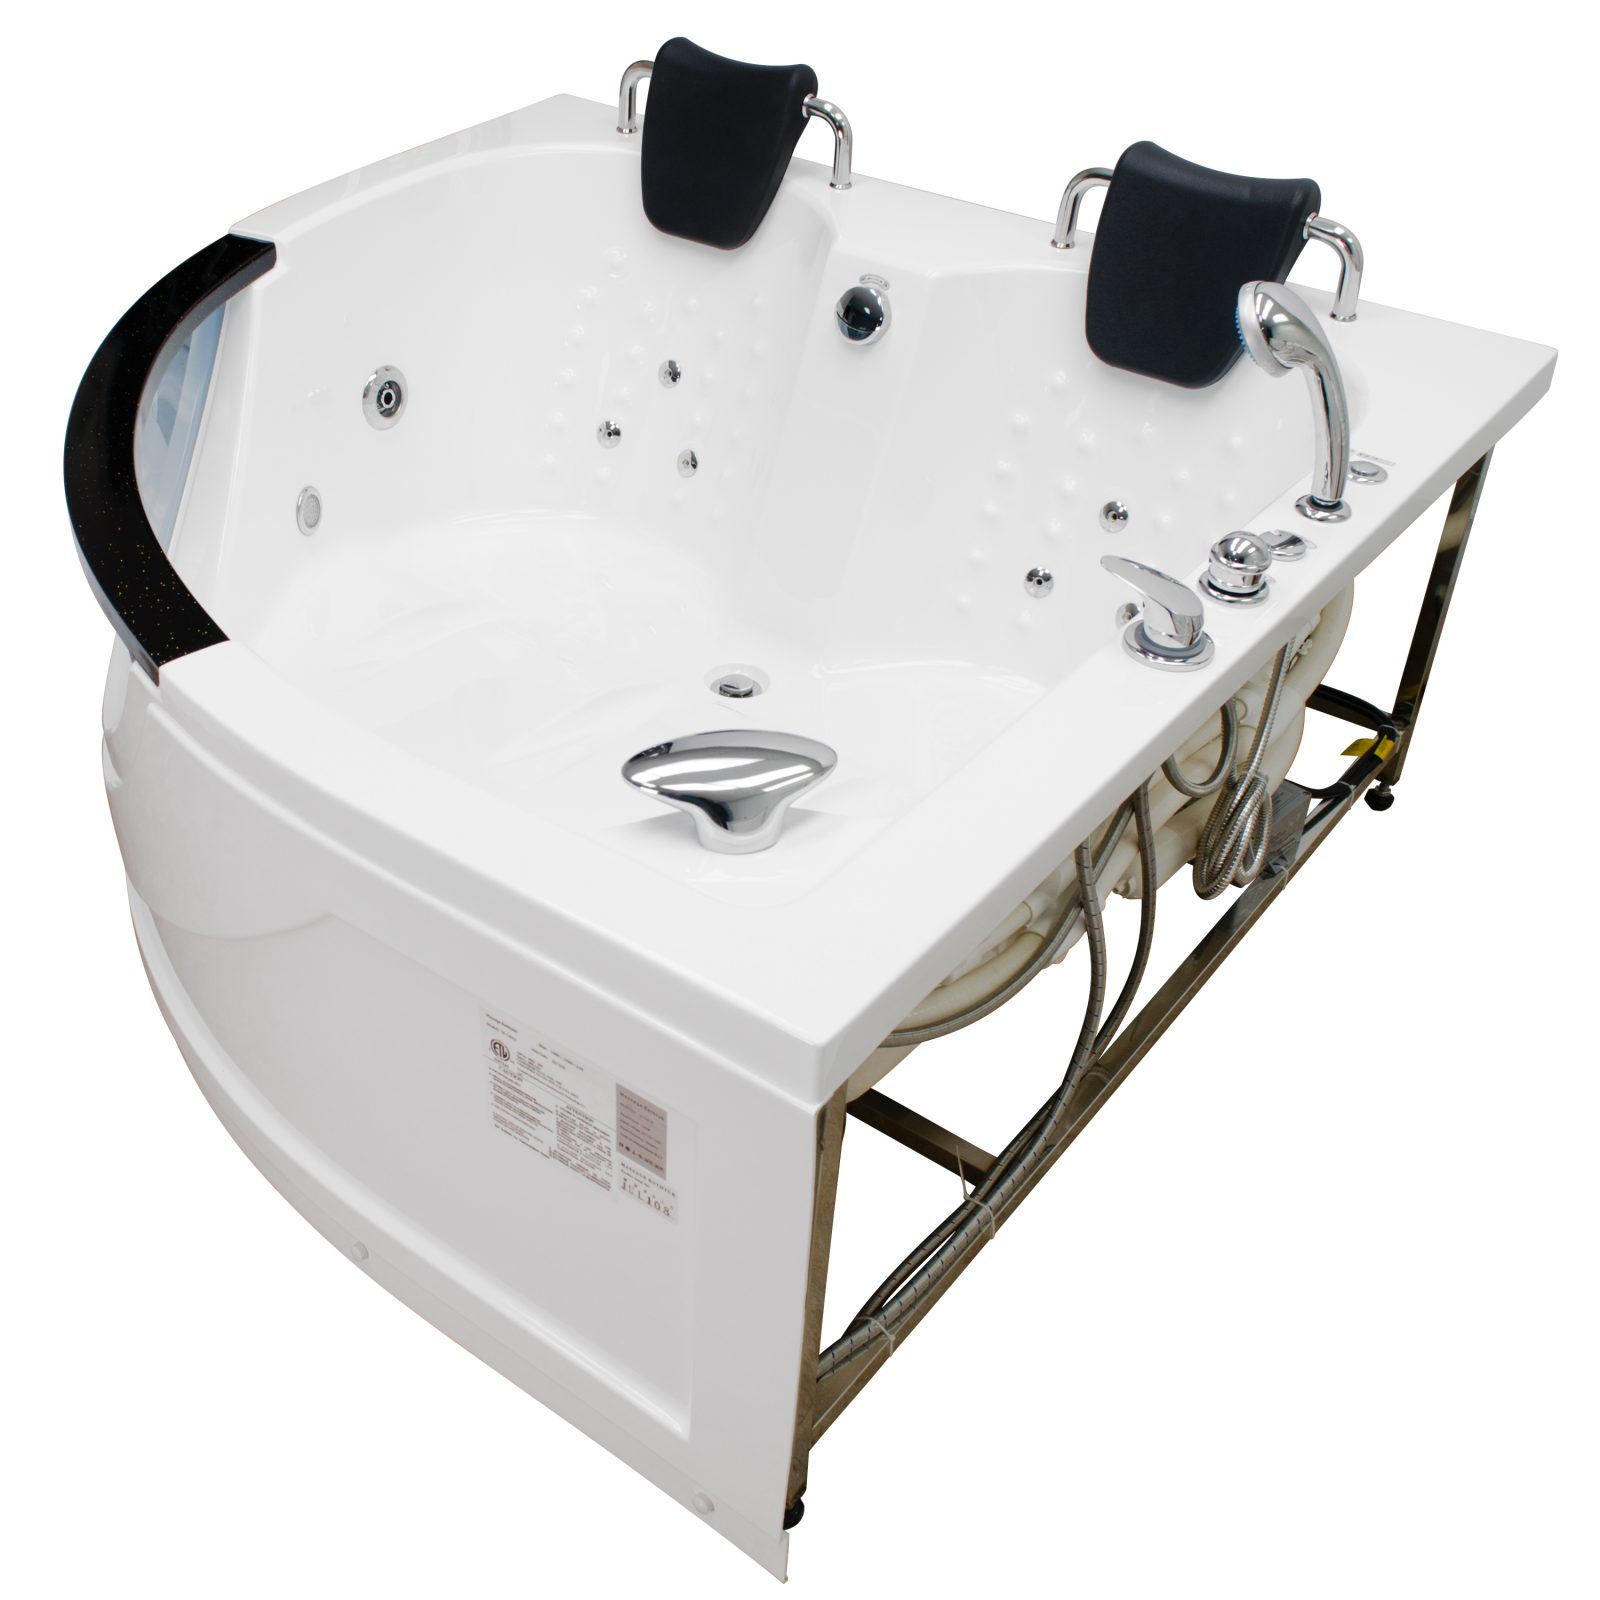 Whirlpool Chelsea Massage Bathtubs – Shop Online Now!